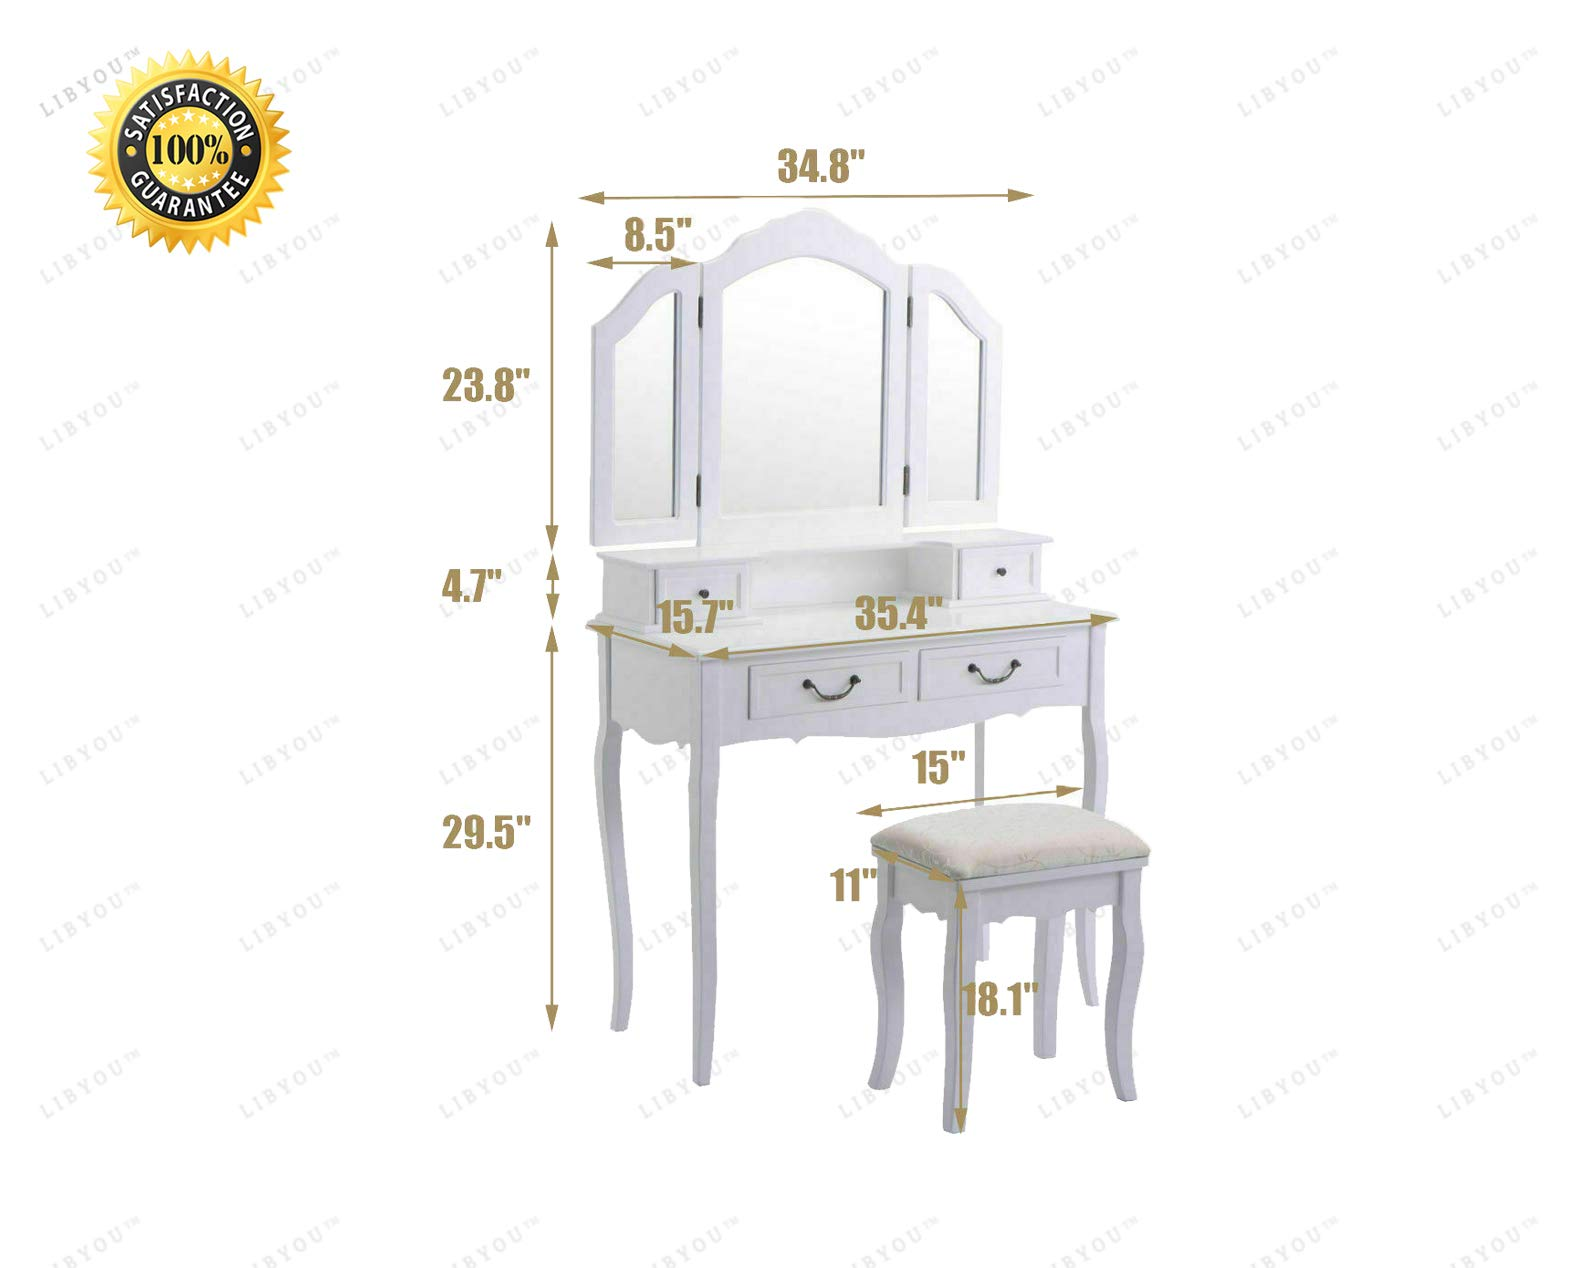 LIBYOU__Tri Folding Wood Mirror Vanity Set,Makeup Table Dresser, Drawers Stool Makeup Table,Drawer&Mirror Jewelry Wood Desk,Makeup Table Stool Set,Tri Folding Vanity,Makeup Dressing Table